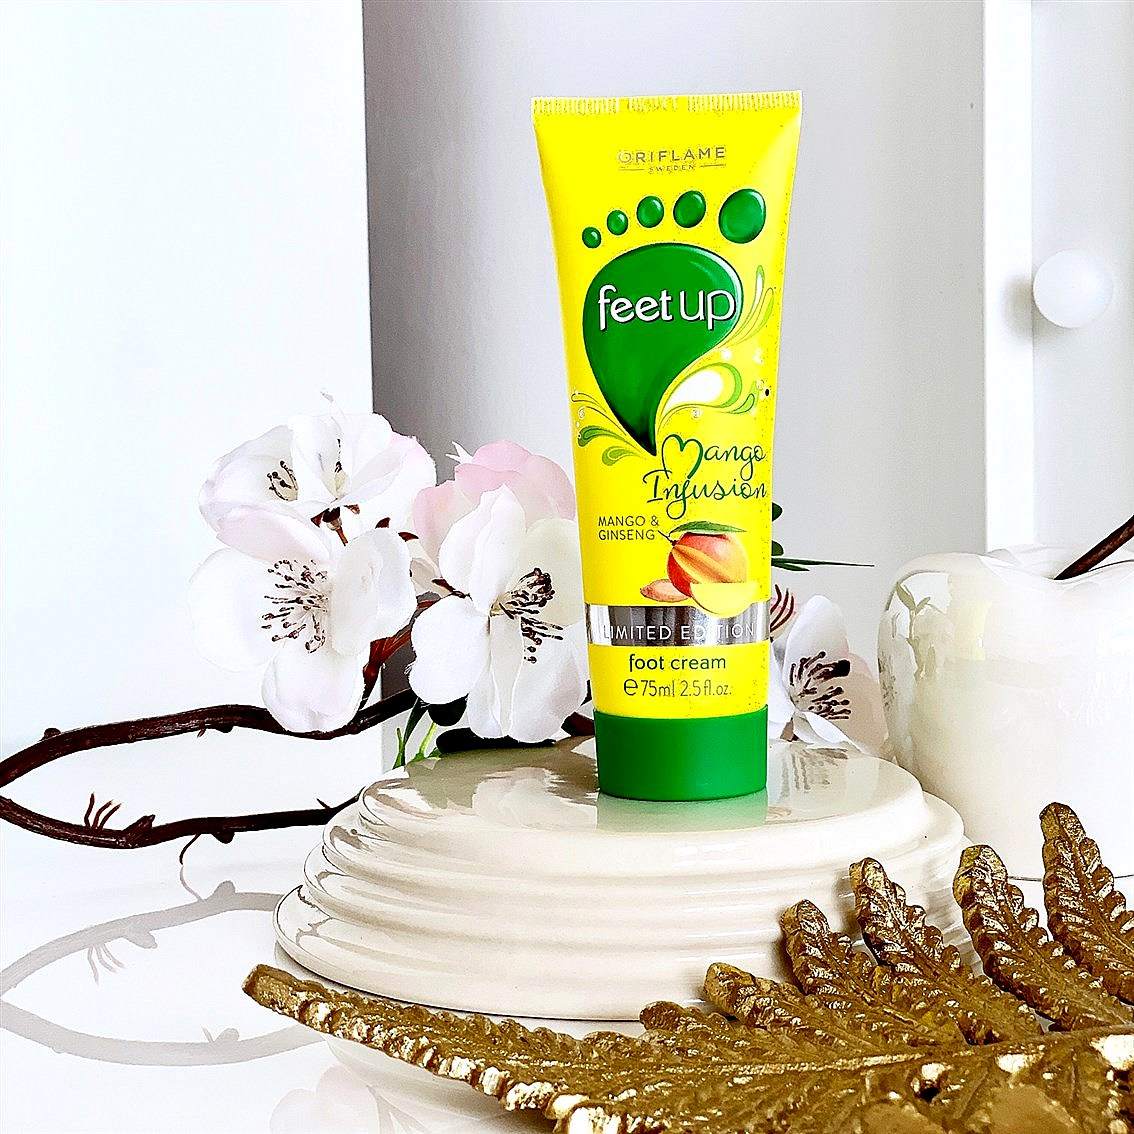 Oriflame Feet Up Mango Infusion opinie